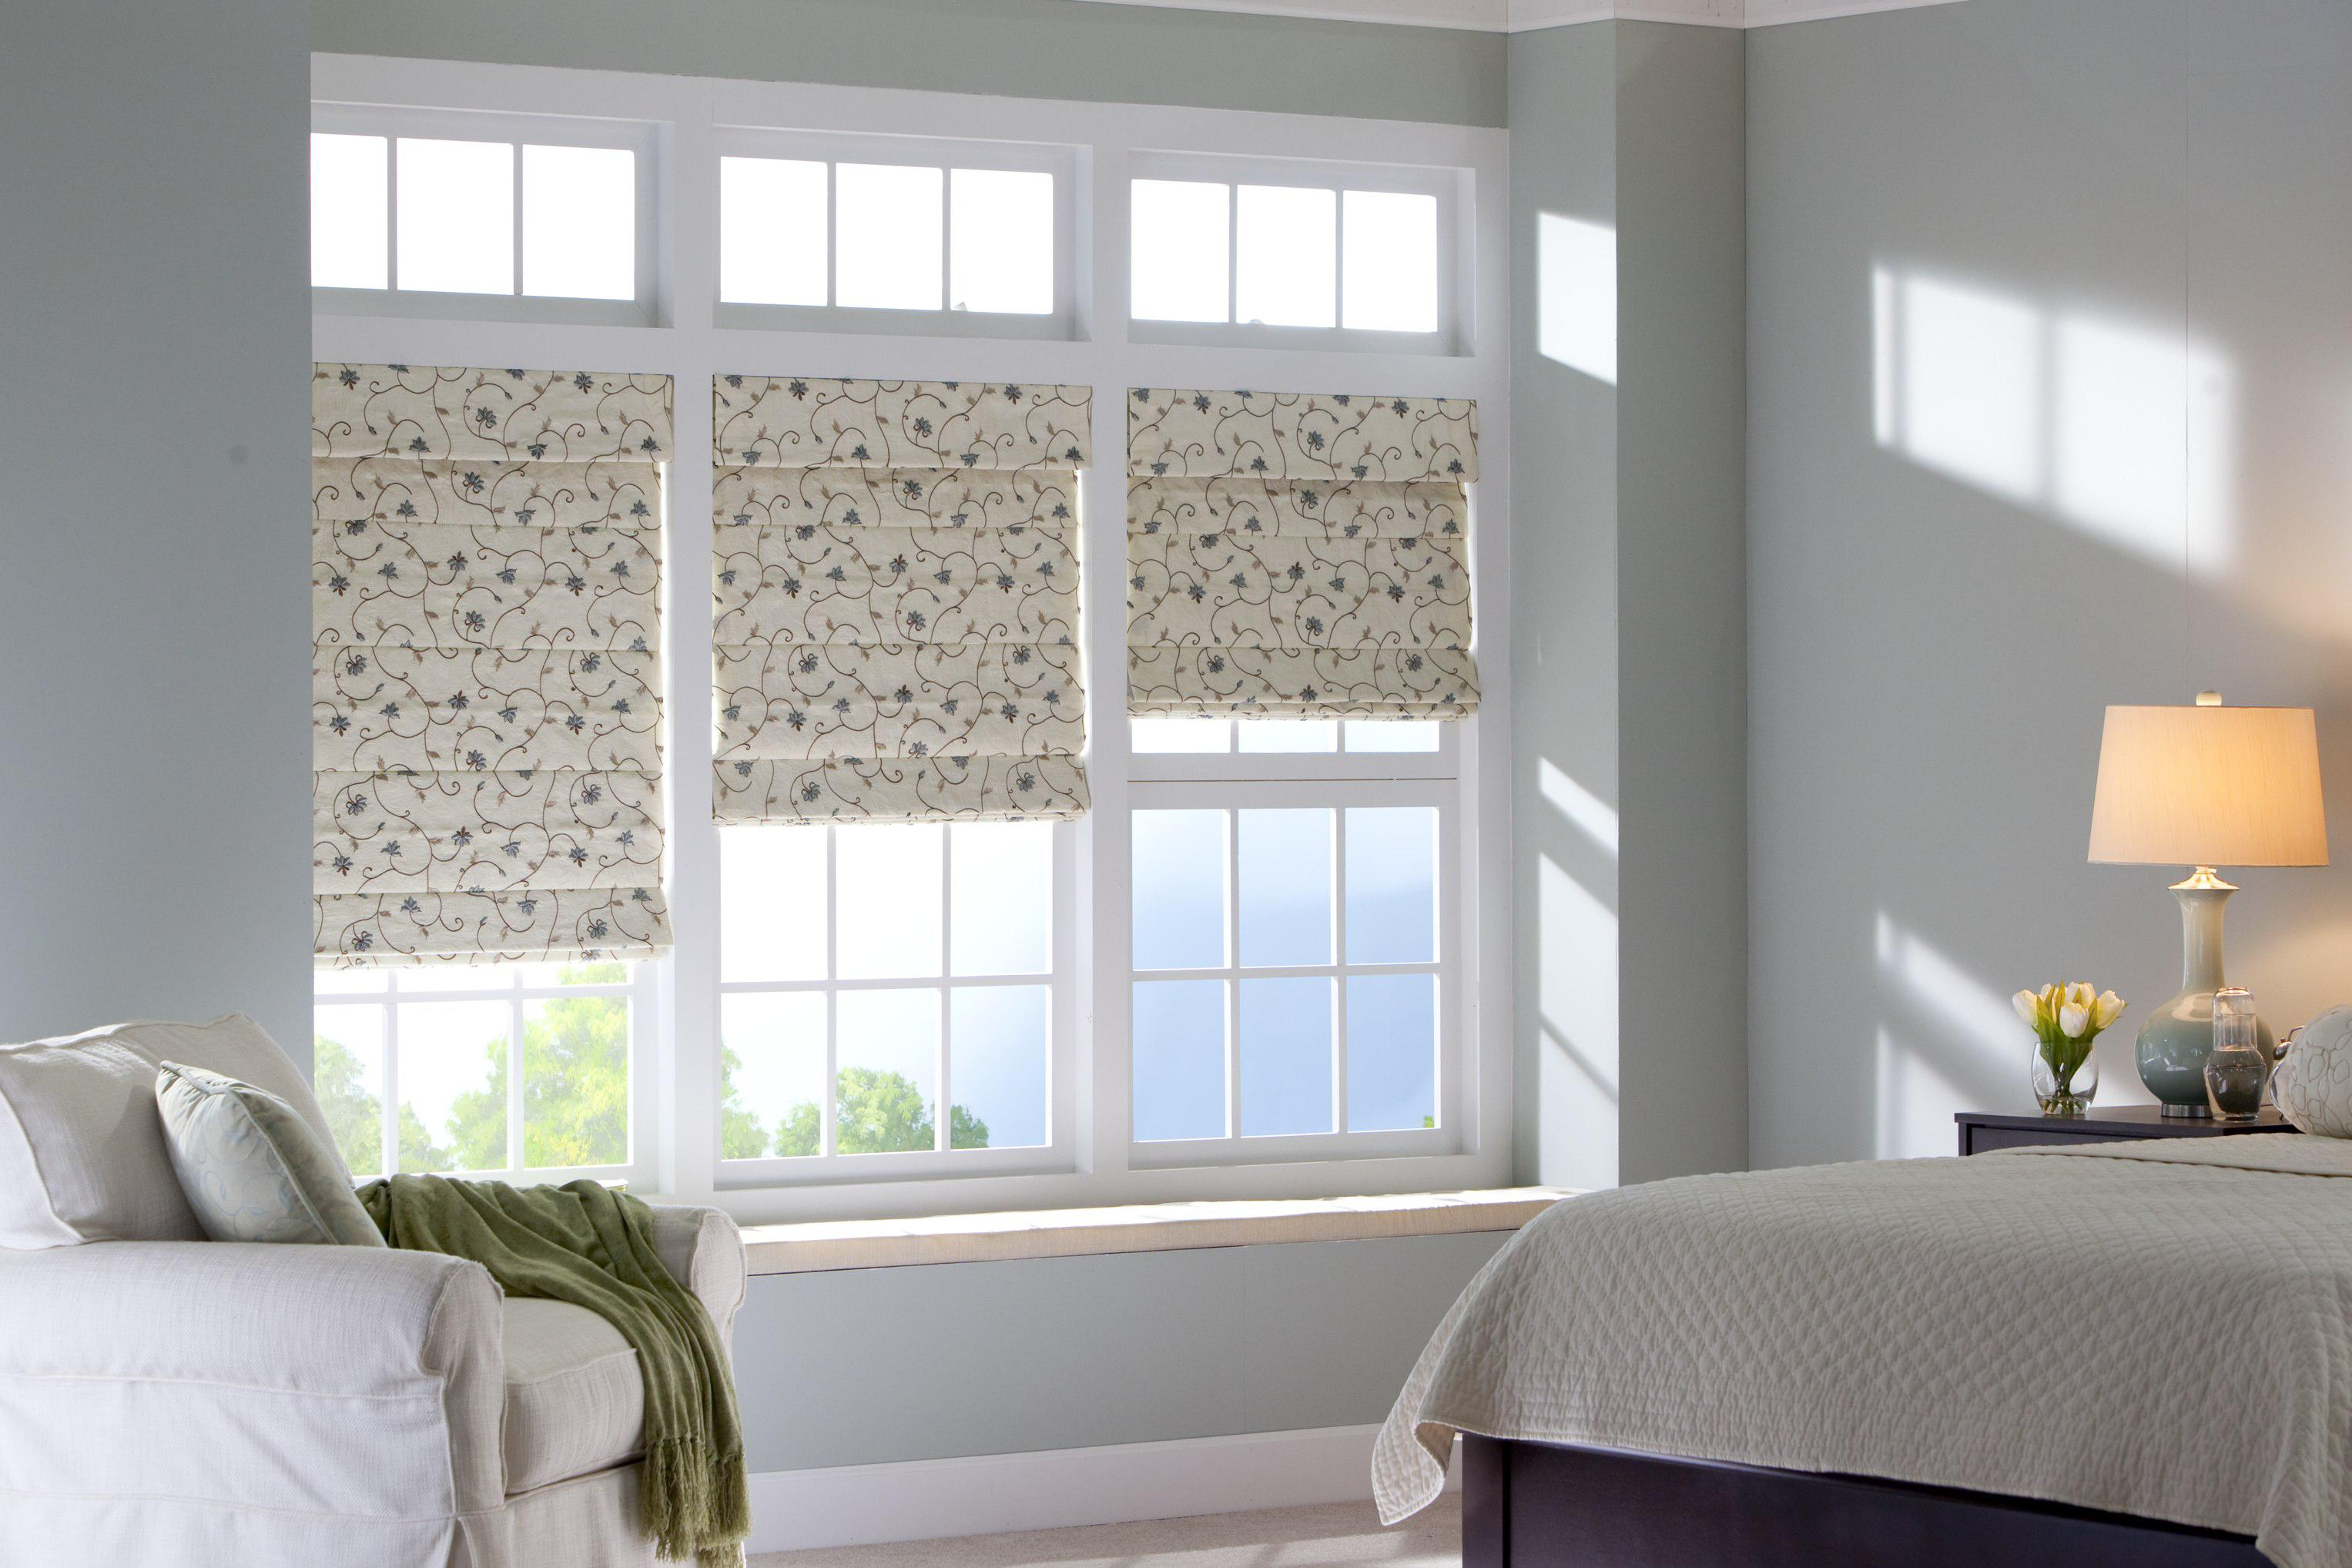 Window Roller Shades Lowes | Lowes Bamboo Shades | Lowes Shades